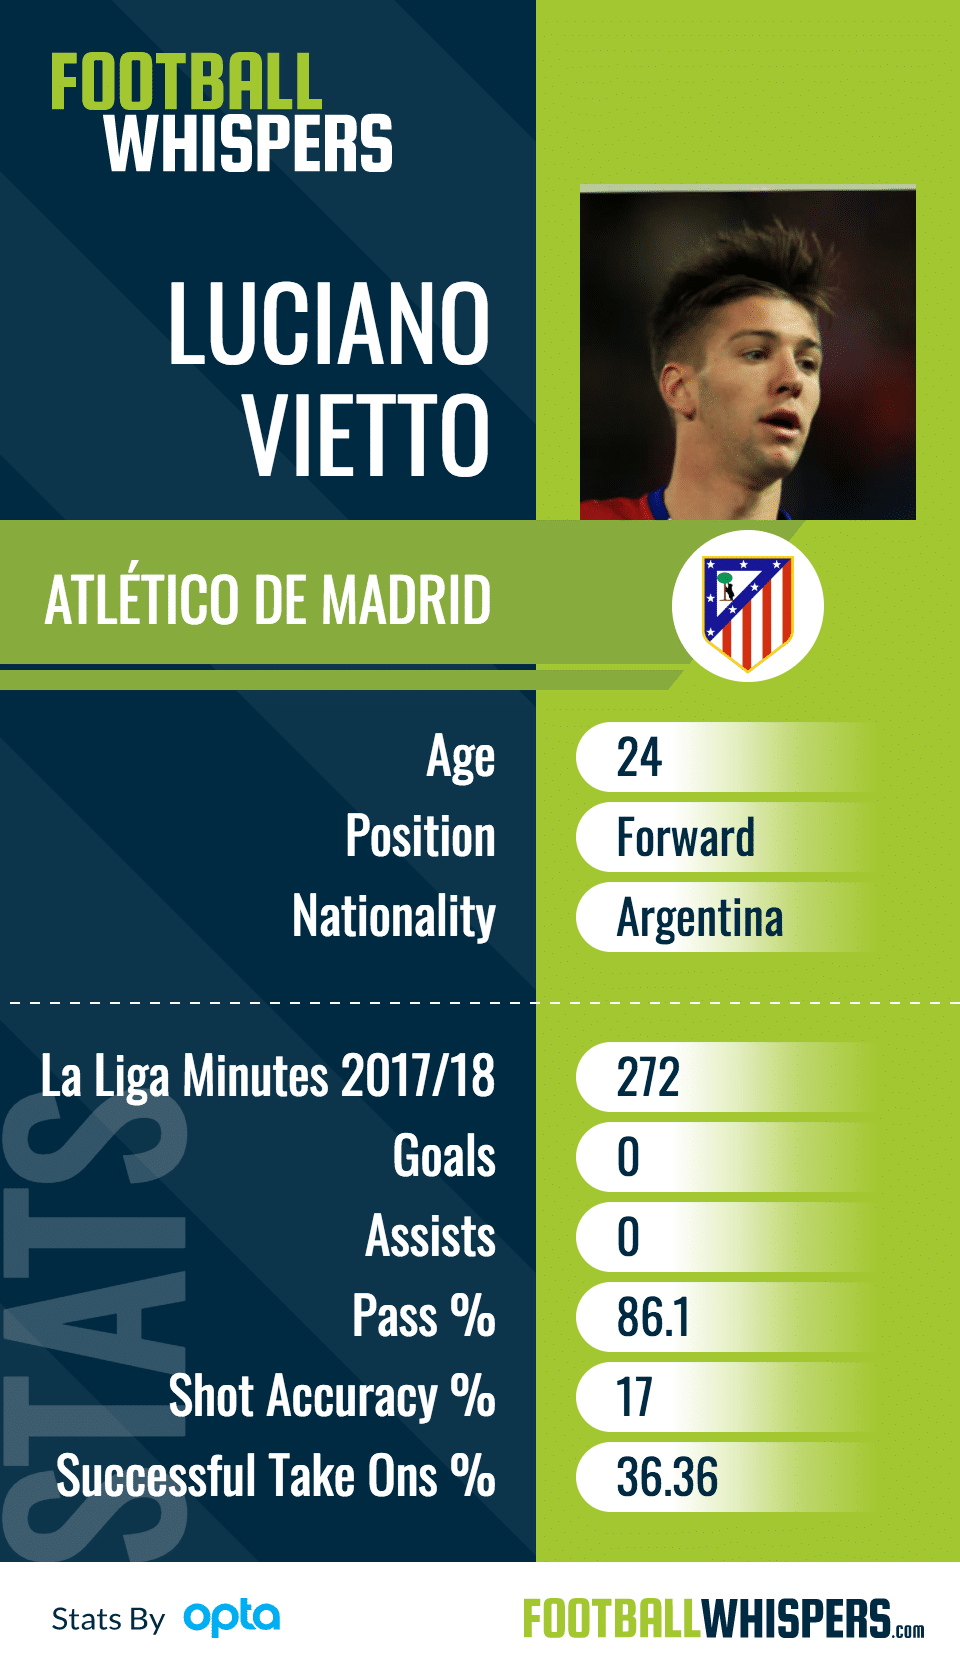 Luciano Vietto player cards